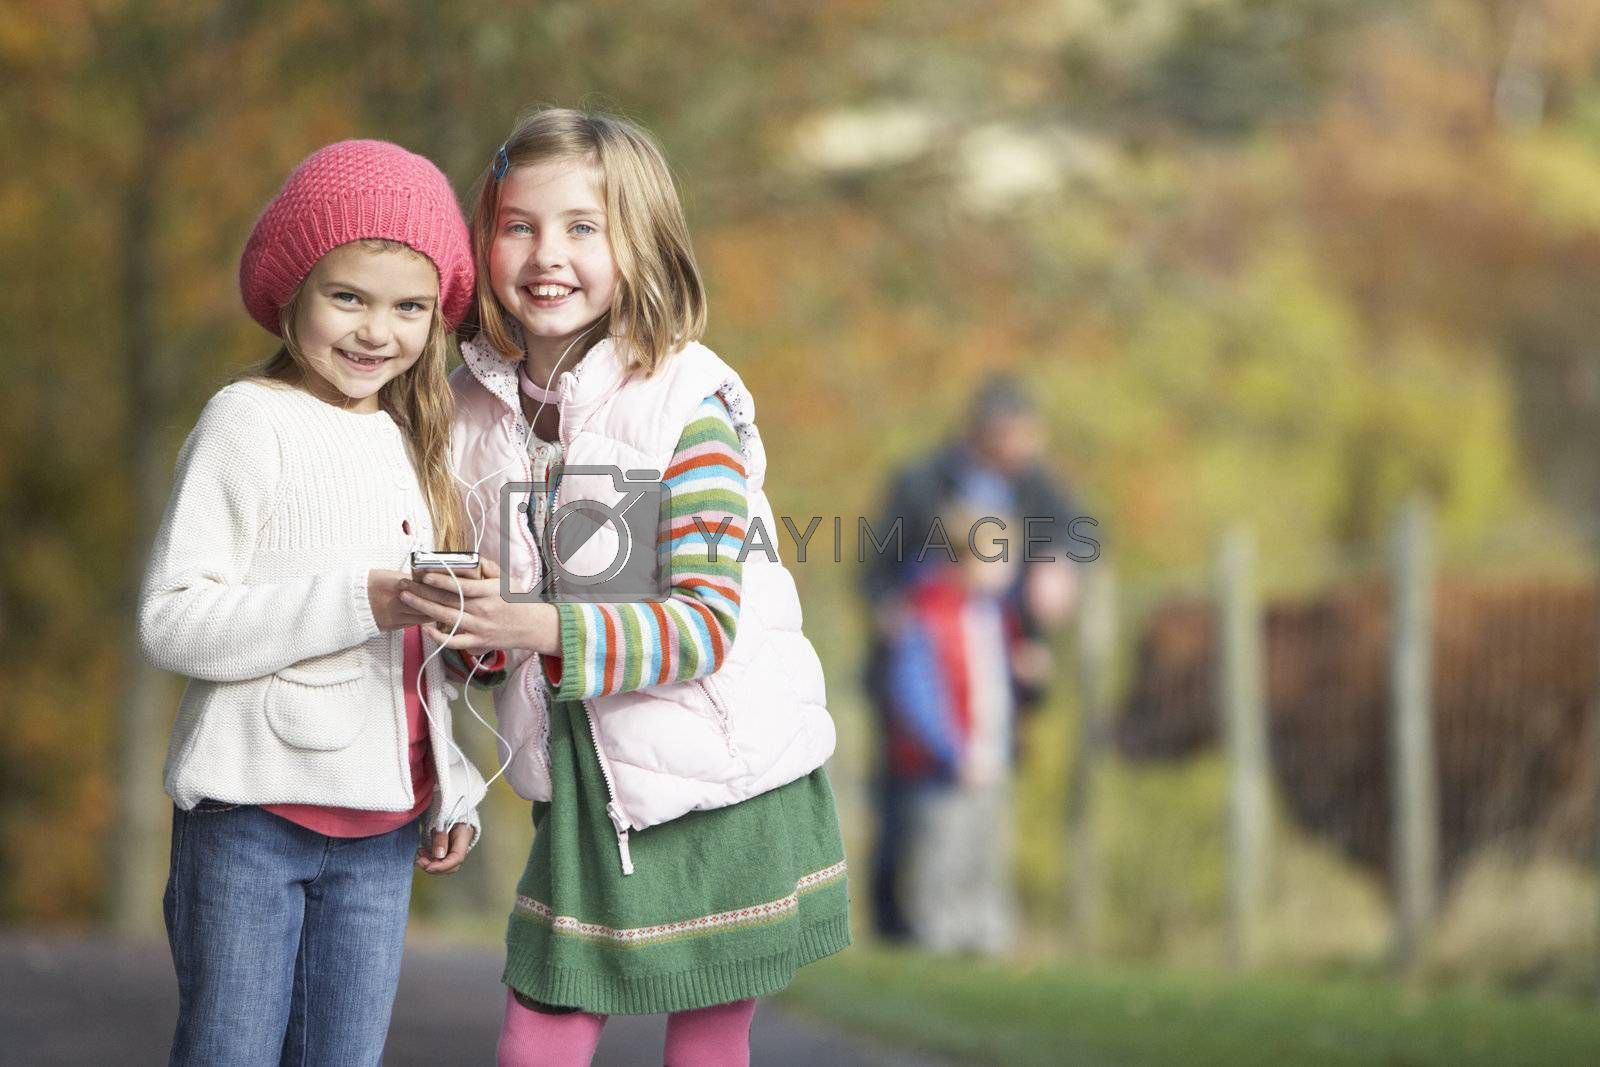 Two Young Girl Listening To MP3 Player Outdoors